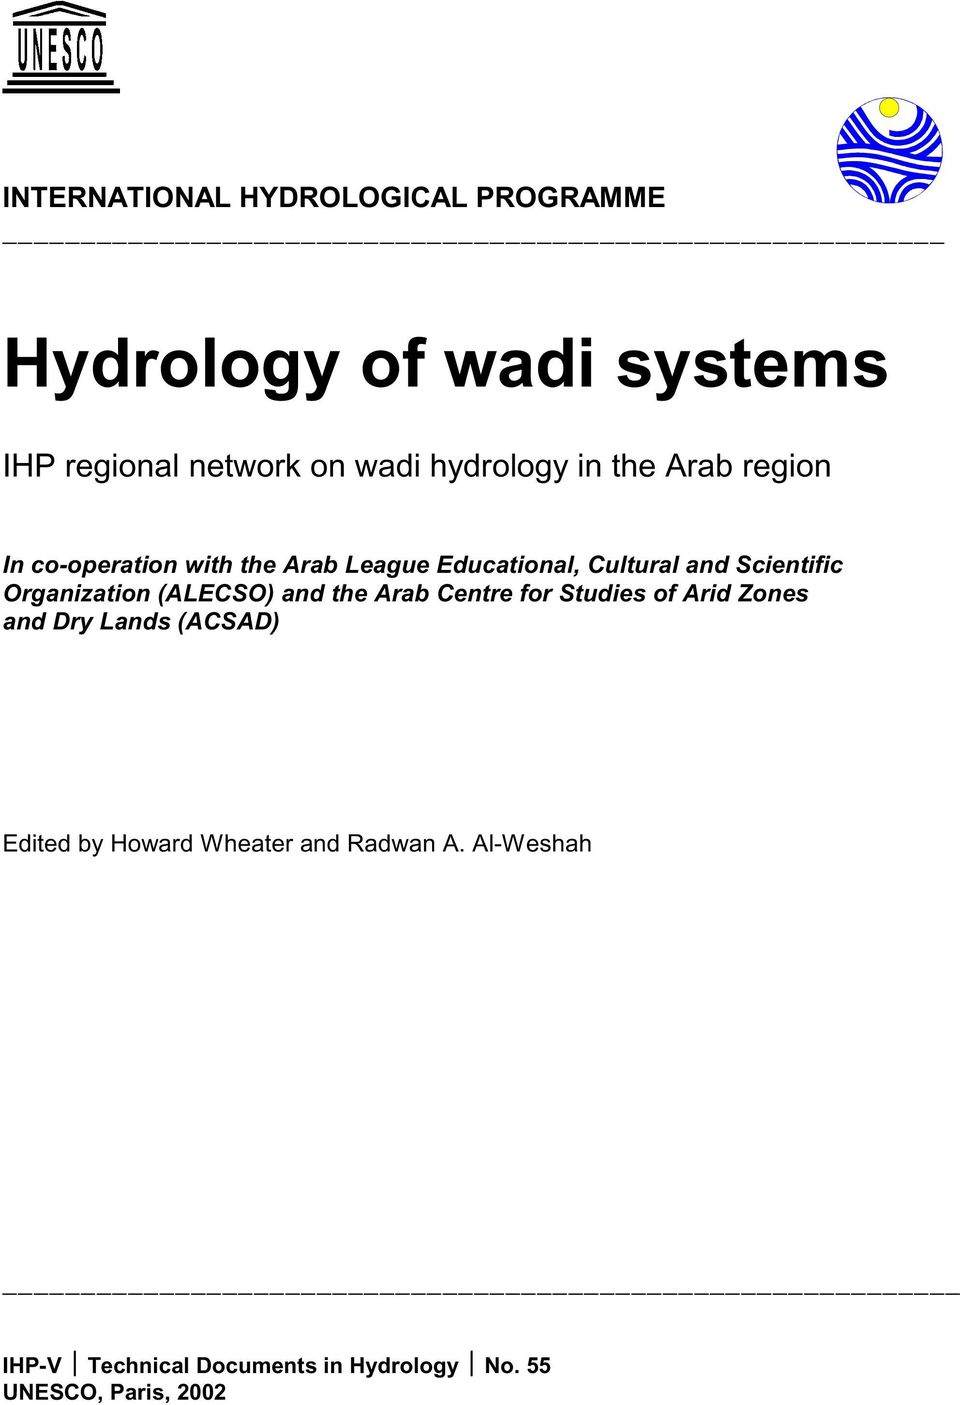 Scientific Organization (ALECSO) and the Arab Centre for Studies of Arid Zones and Dry Lands